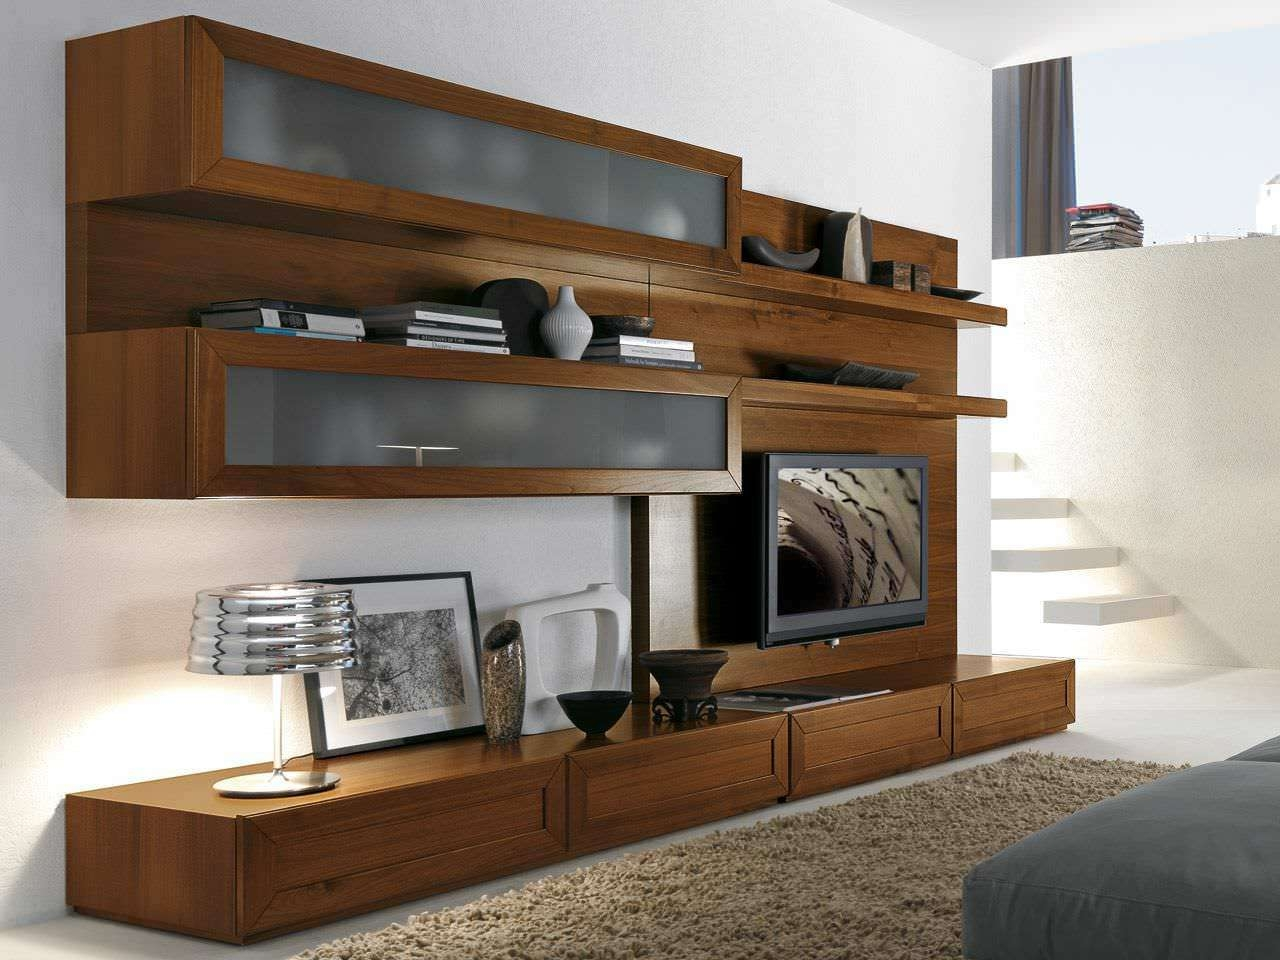 Tv Wall Units Cabinets – Wall Units Design Ideas : Electoral7 Pertaining To Tv Cabinets And Wall Units (View 13 of 20)